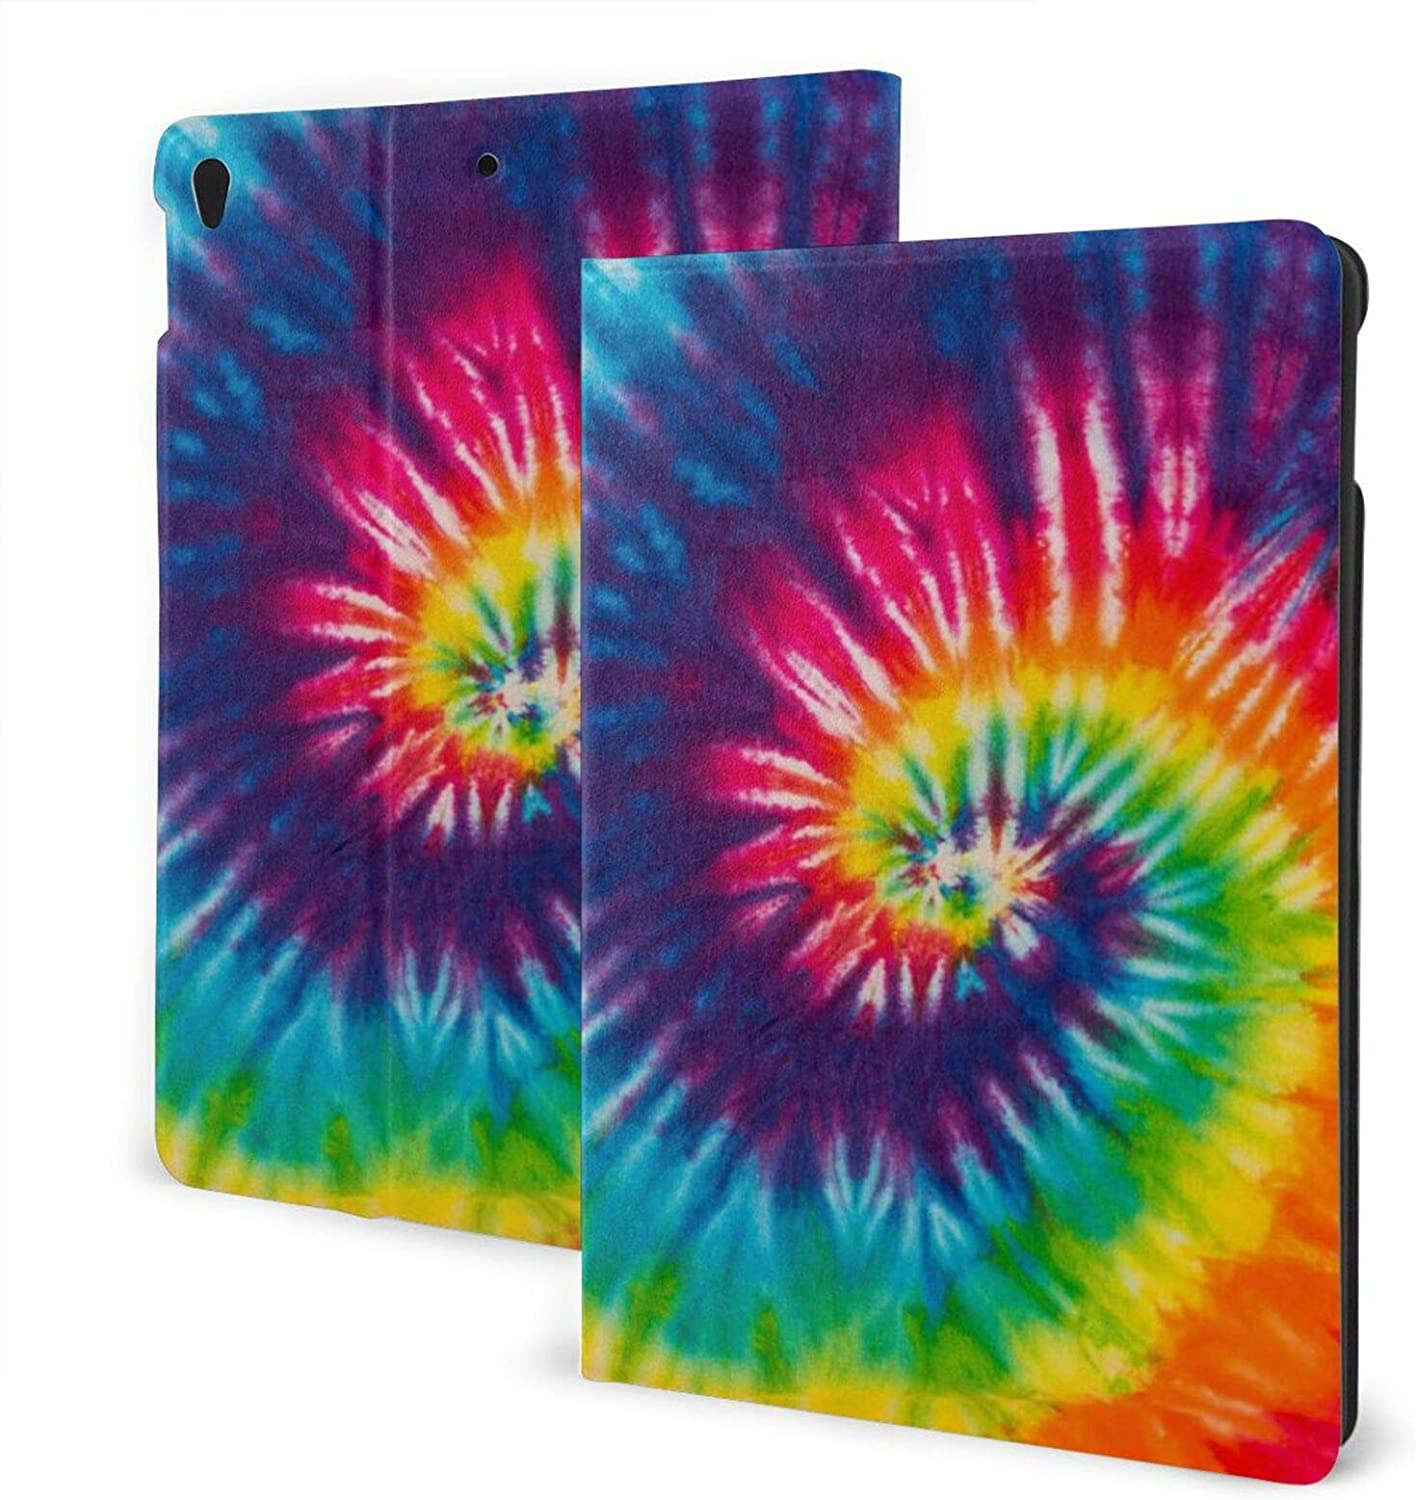 Rainbow Tie Dye IPad Case, Soft Rubber Back Cover Protective Leather Case Adjustable Stand Auto Wake/Sleep Smart Case for IPad 7th 10.2